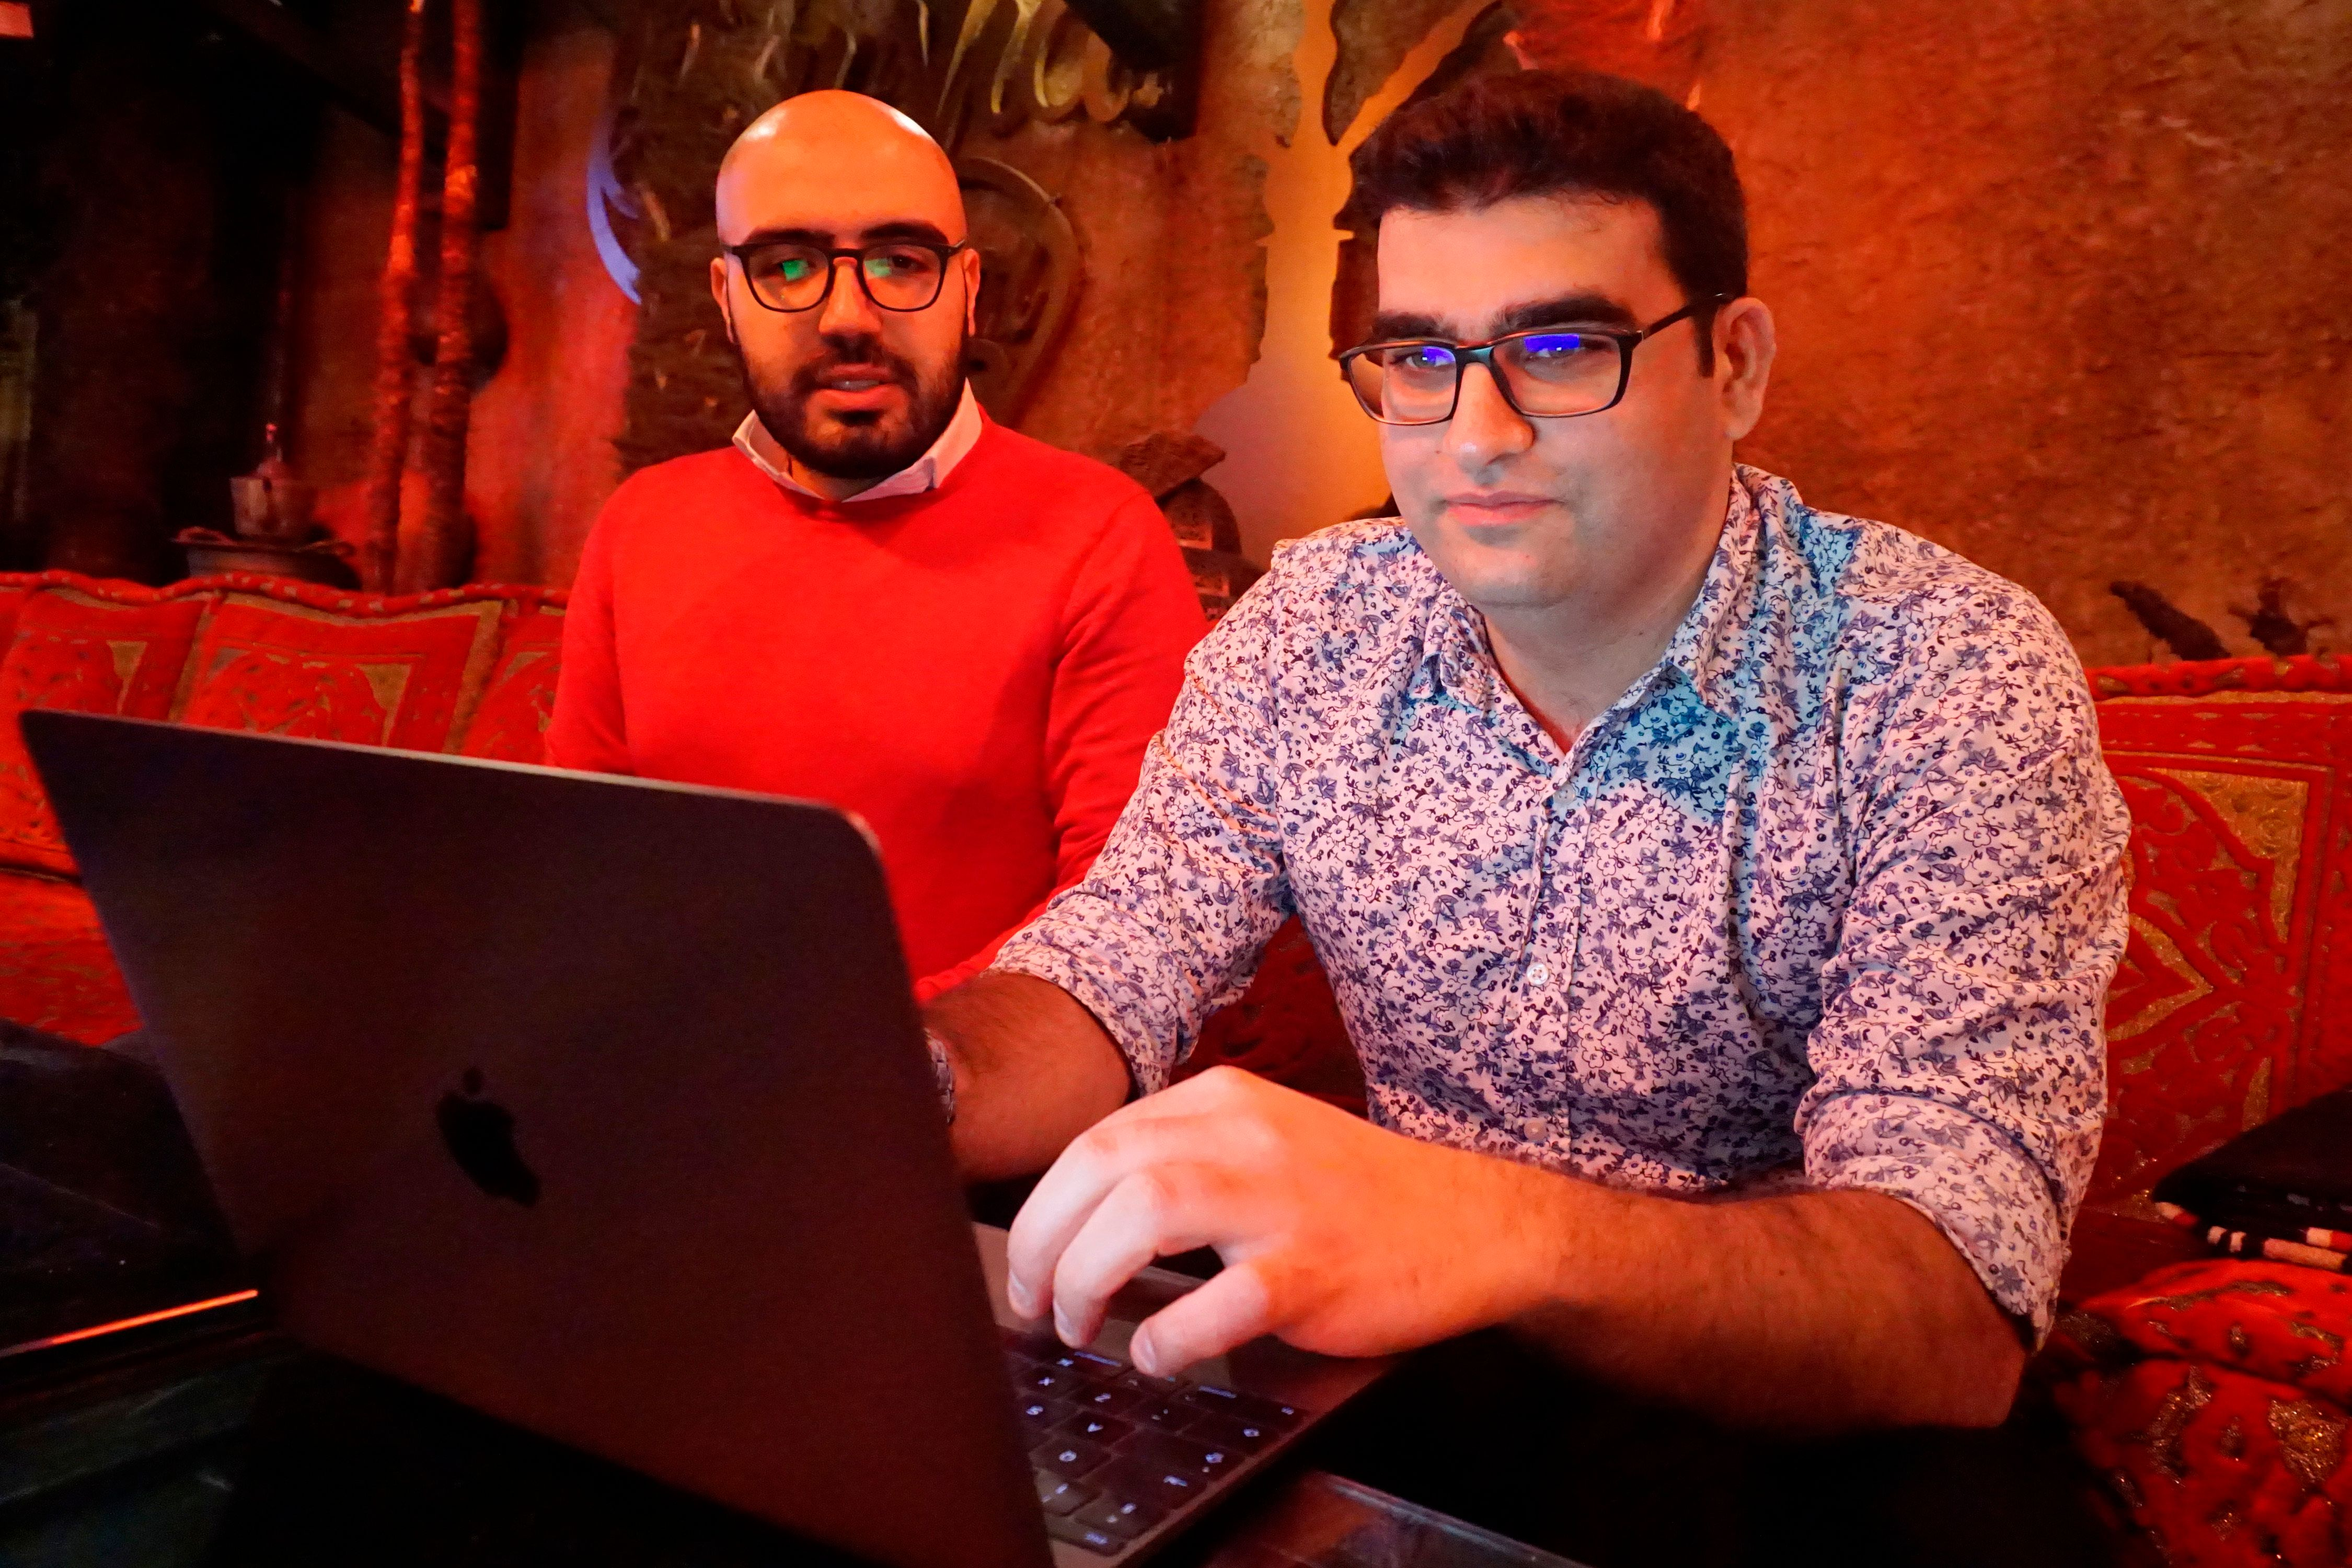 Certfa researchers Nariman Gharib, left, and Amin Sabeti look at a computer at a cafe in London on Friday, Dec. 7, 2018. The Associated Press drew on data gathered by the London-based cybersecurity group Certfa to track how a hacking group often nicknamed Charming Kitten spent the past month trying to break into the private emails of more than a dozen U.S. Treasury officials. Also on the hackers' hit list: high-profile defenders, detractors and enforcers of the nuclear deal struck between Washington and Tehran, as well as Arab atomic scientists, Iranian civil society figures and D.C. think tank employees. (AP Photo/Raphael Satter)